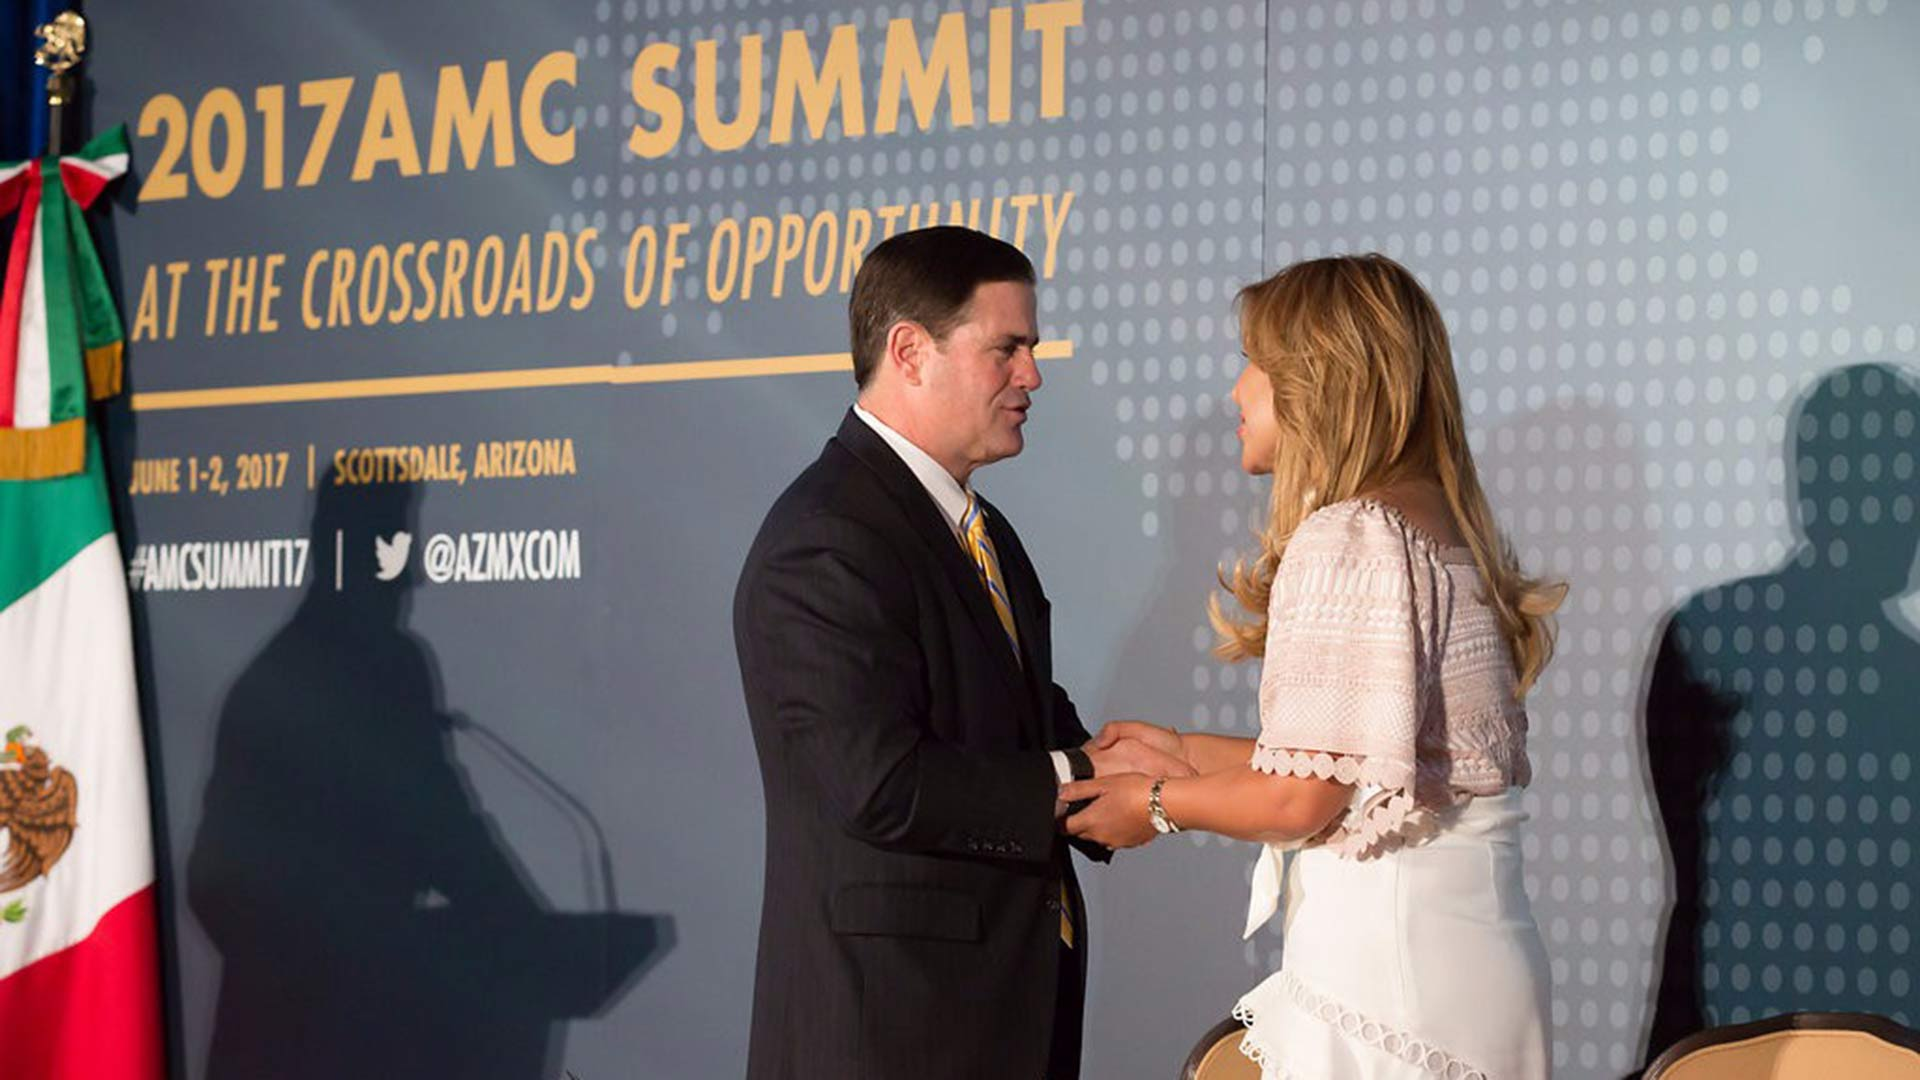 Arizona Gov. Doug Ducey and Sonoran Gov. Claudia Pavlovich at a June 2017 Arizona-Mexico Commission summit in Scottsdale, Arizona. The commission also met in November 2017 in Puerto Peñasco, Mexico.